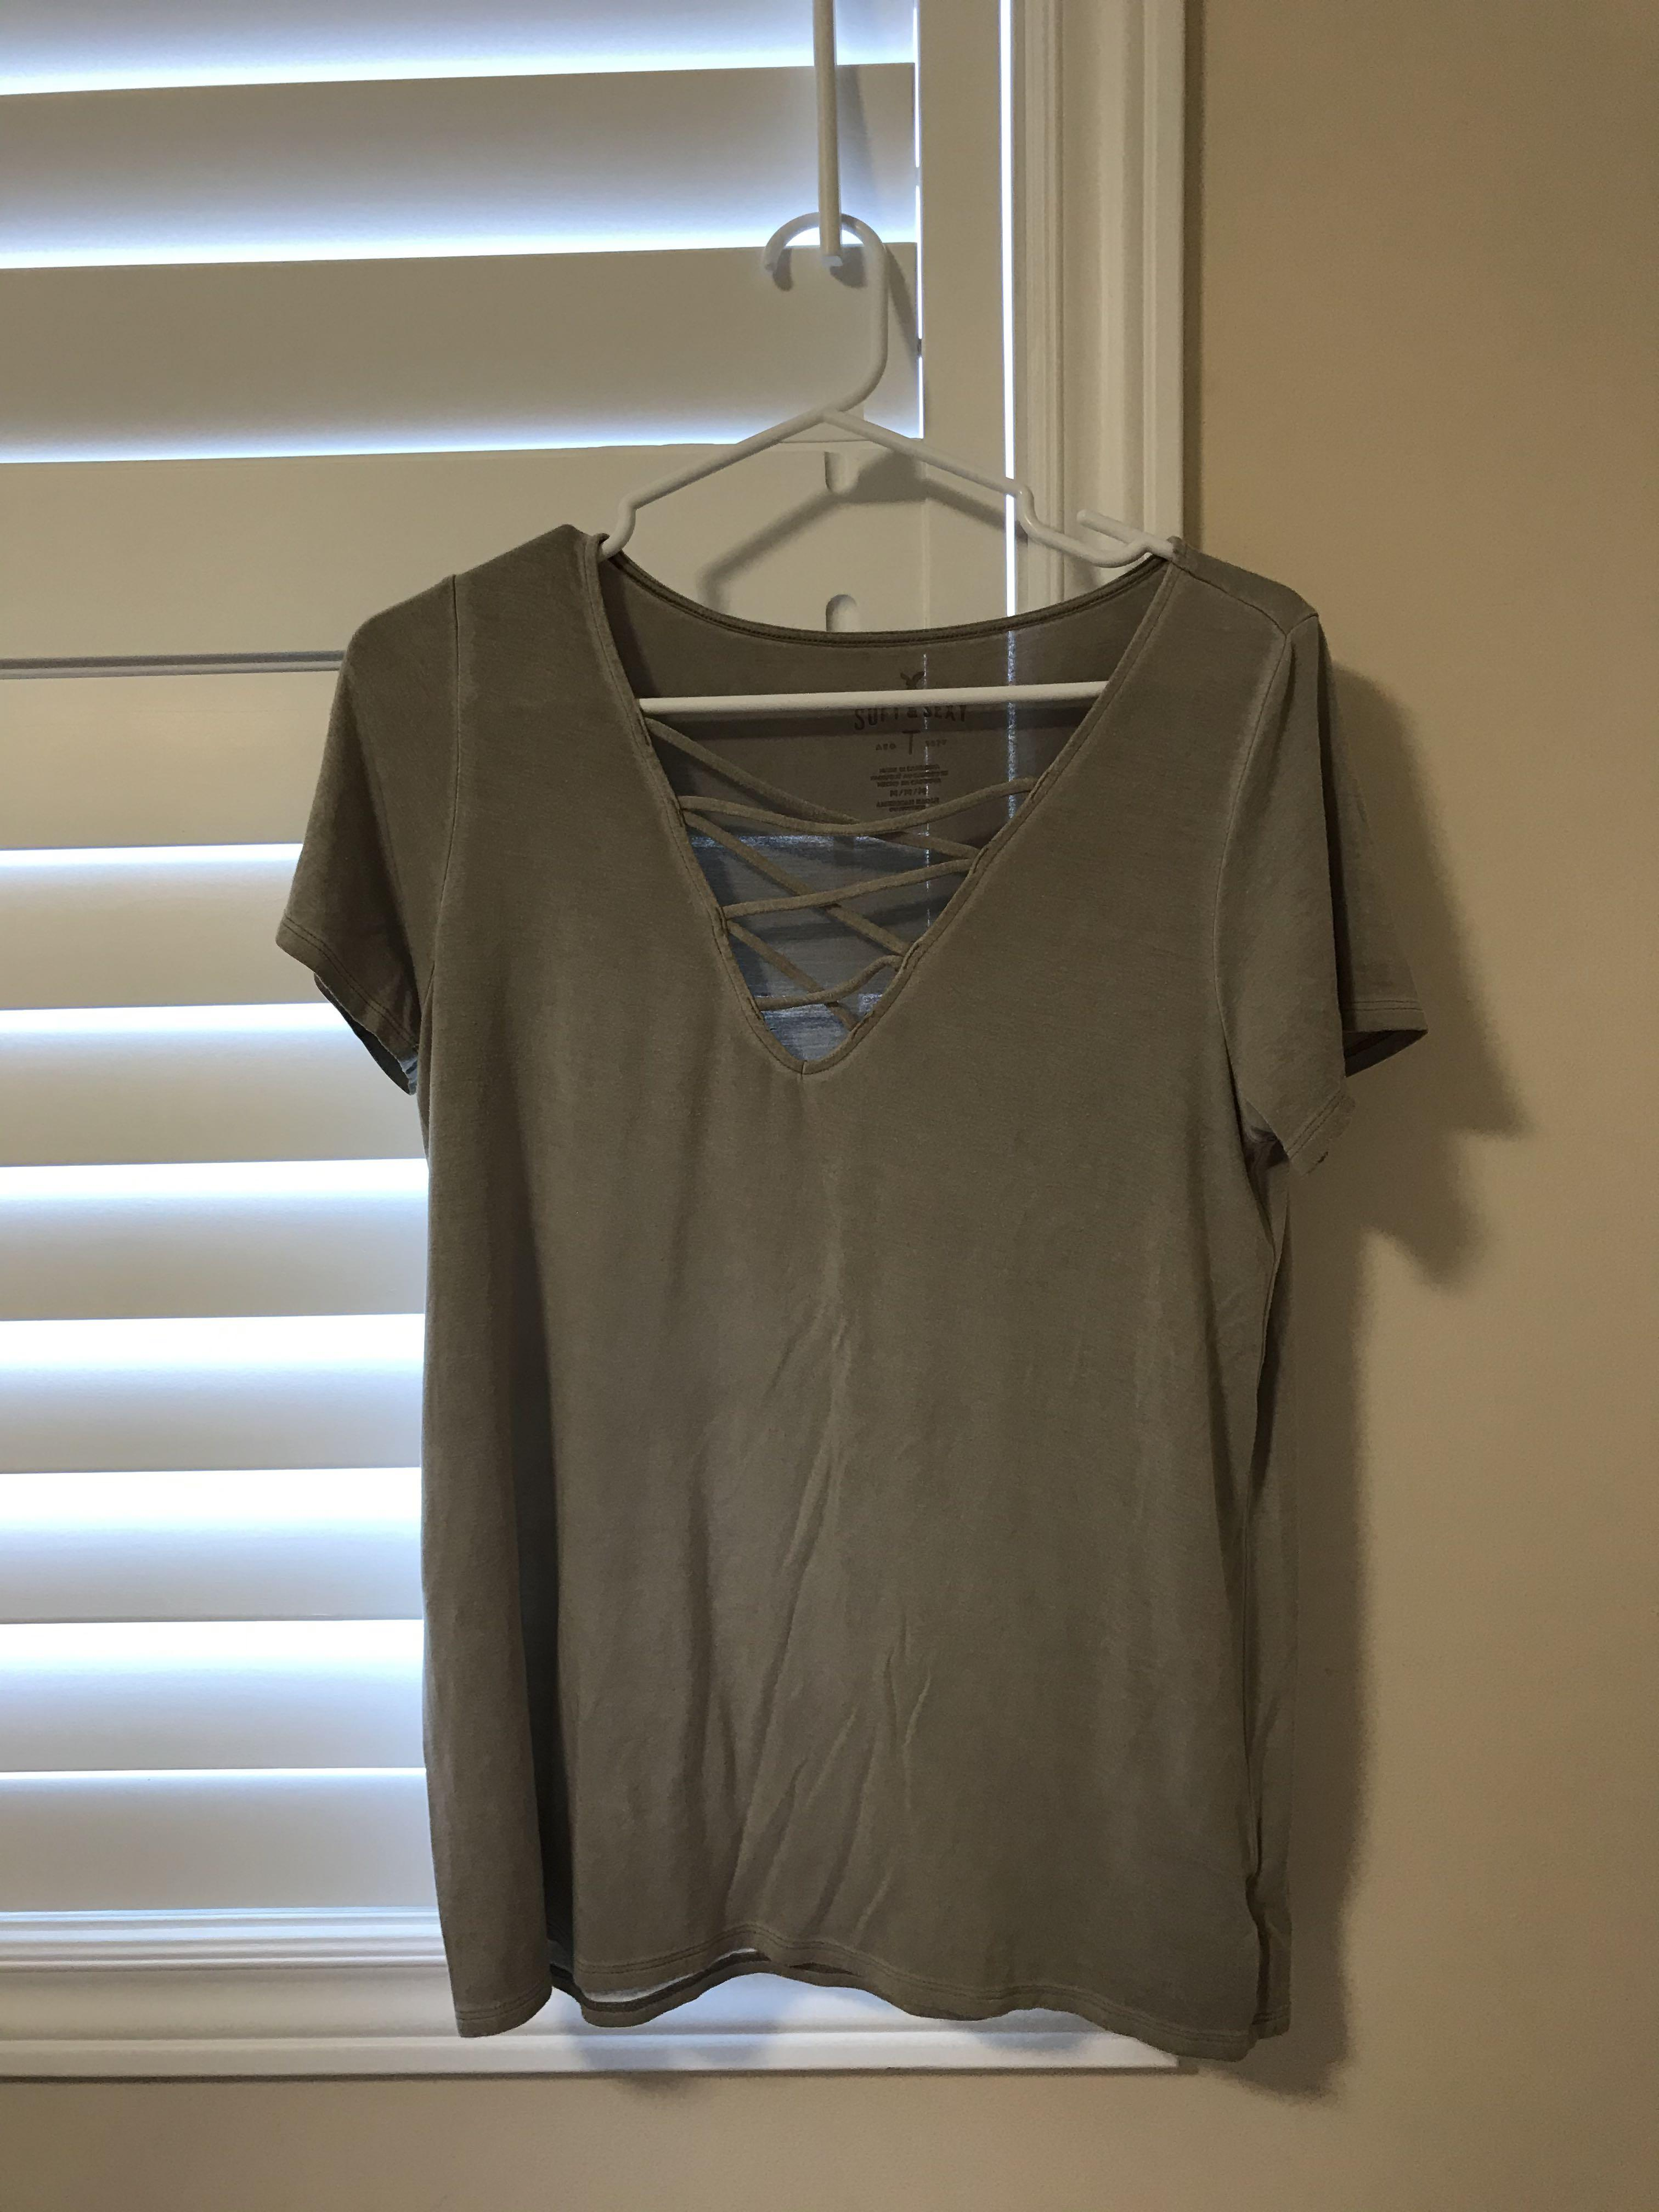 American eagle soft and sexy cross-cross v neck